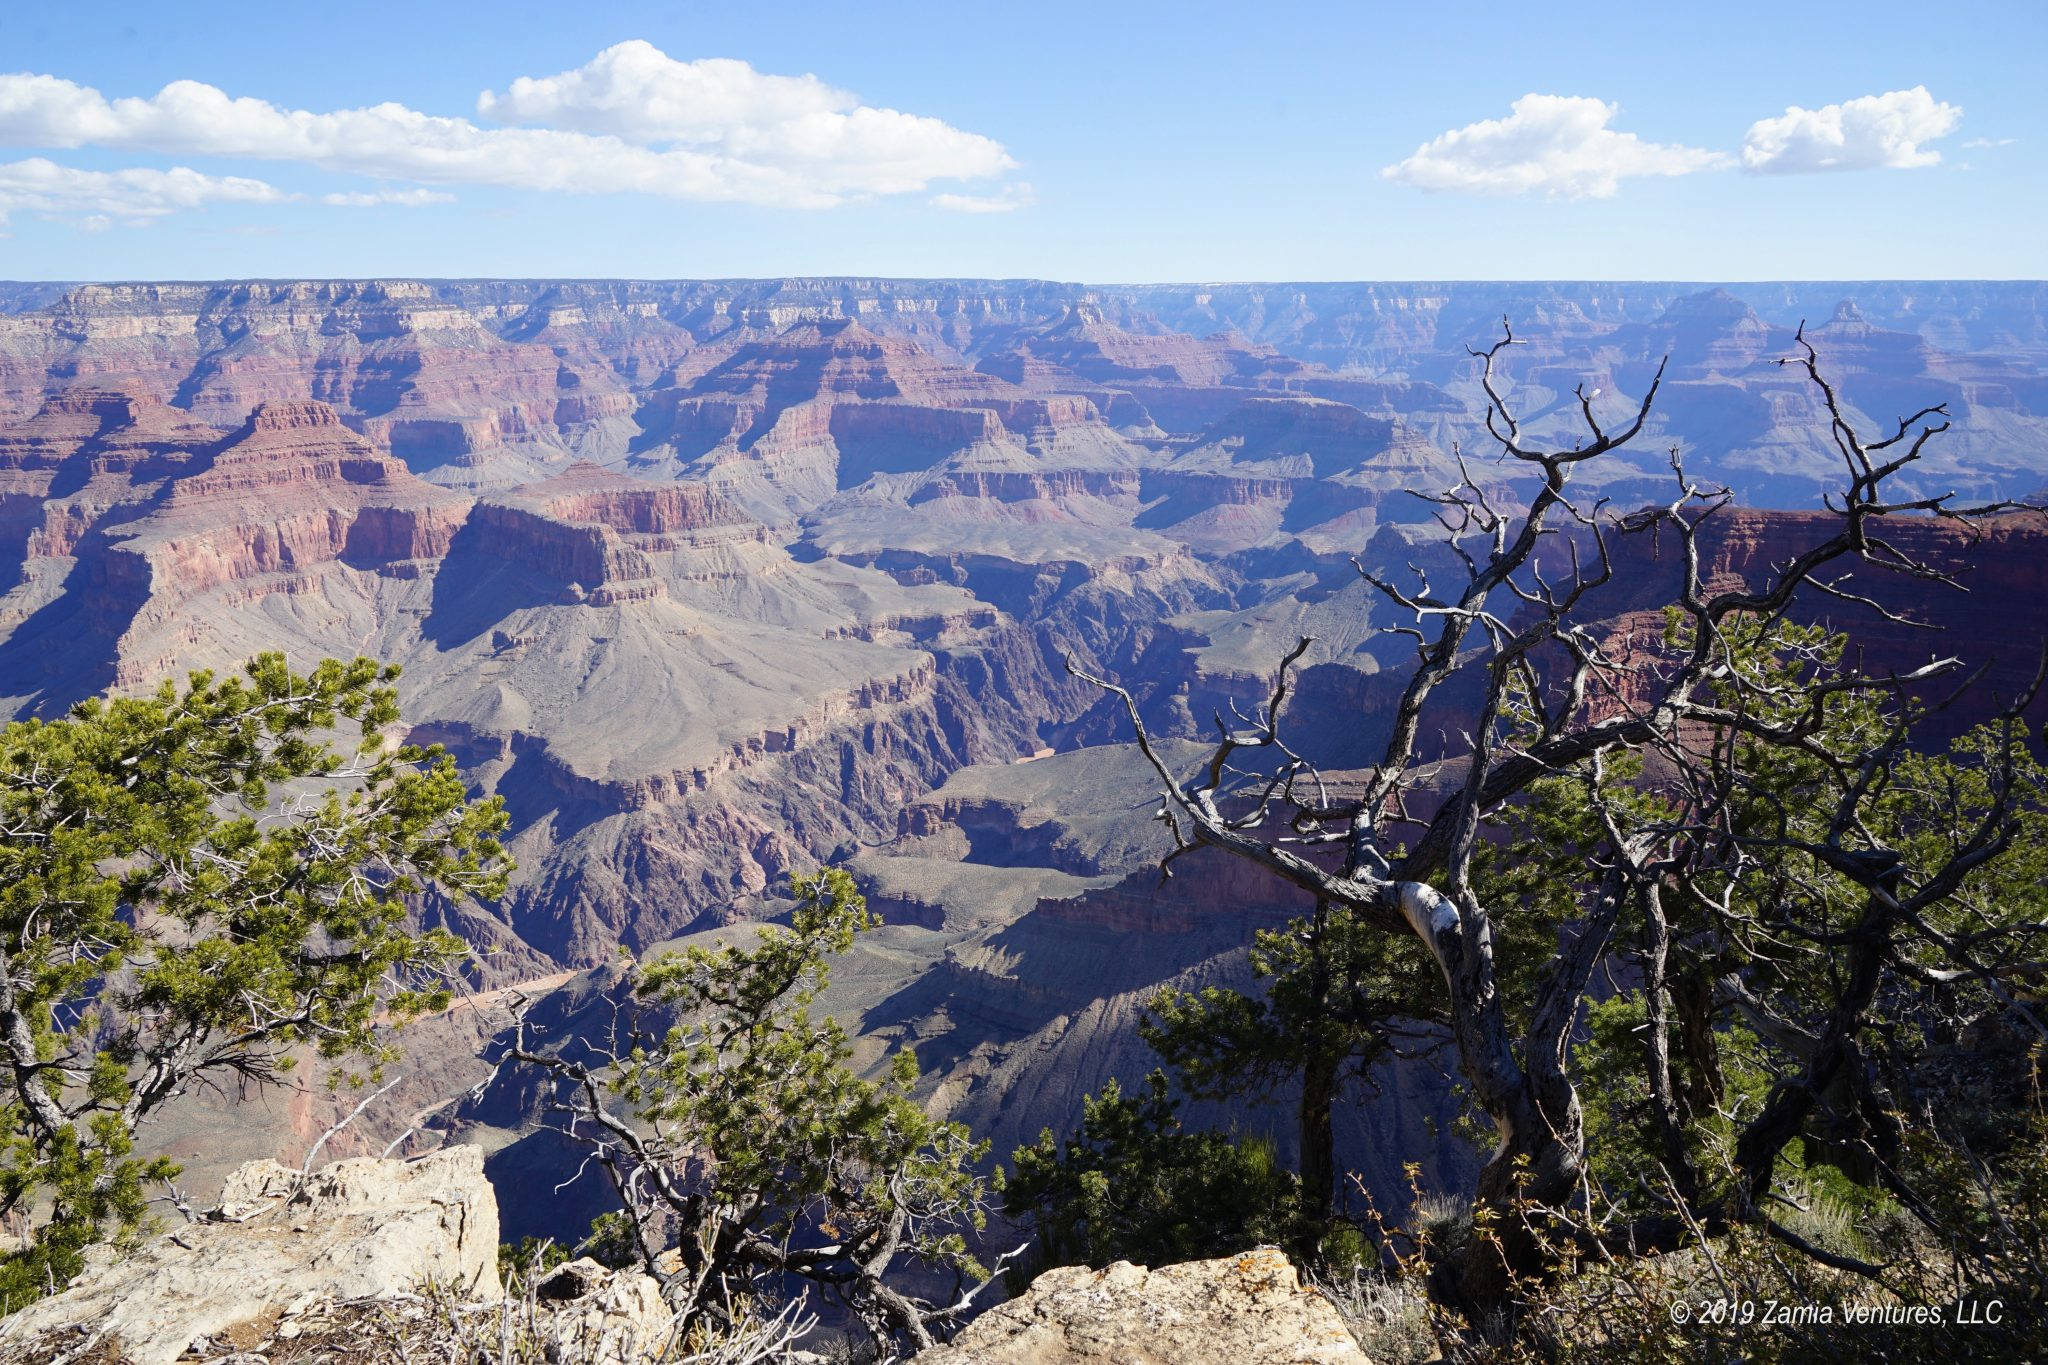 Impressed by a Hole in the Ground at the Grand Canyon